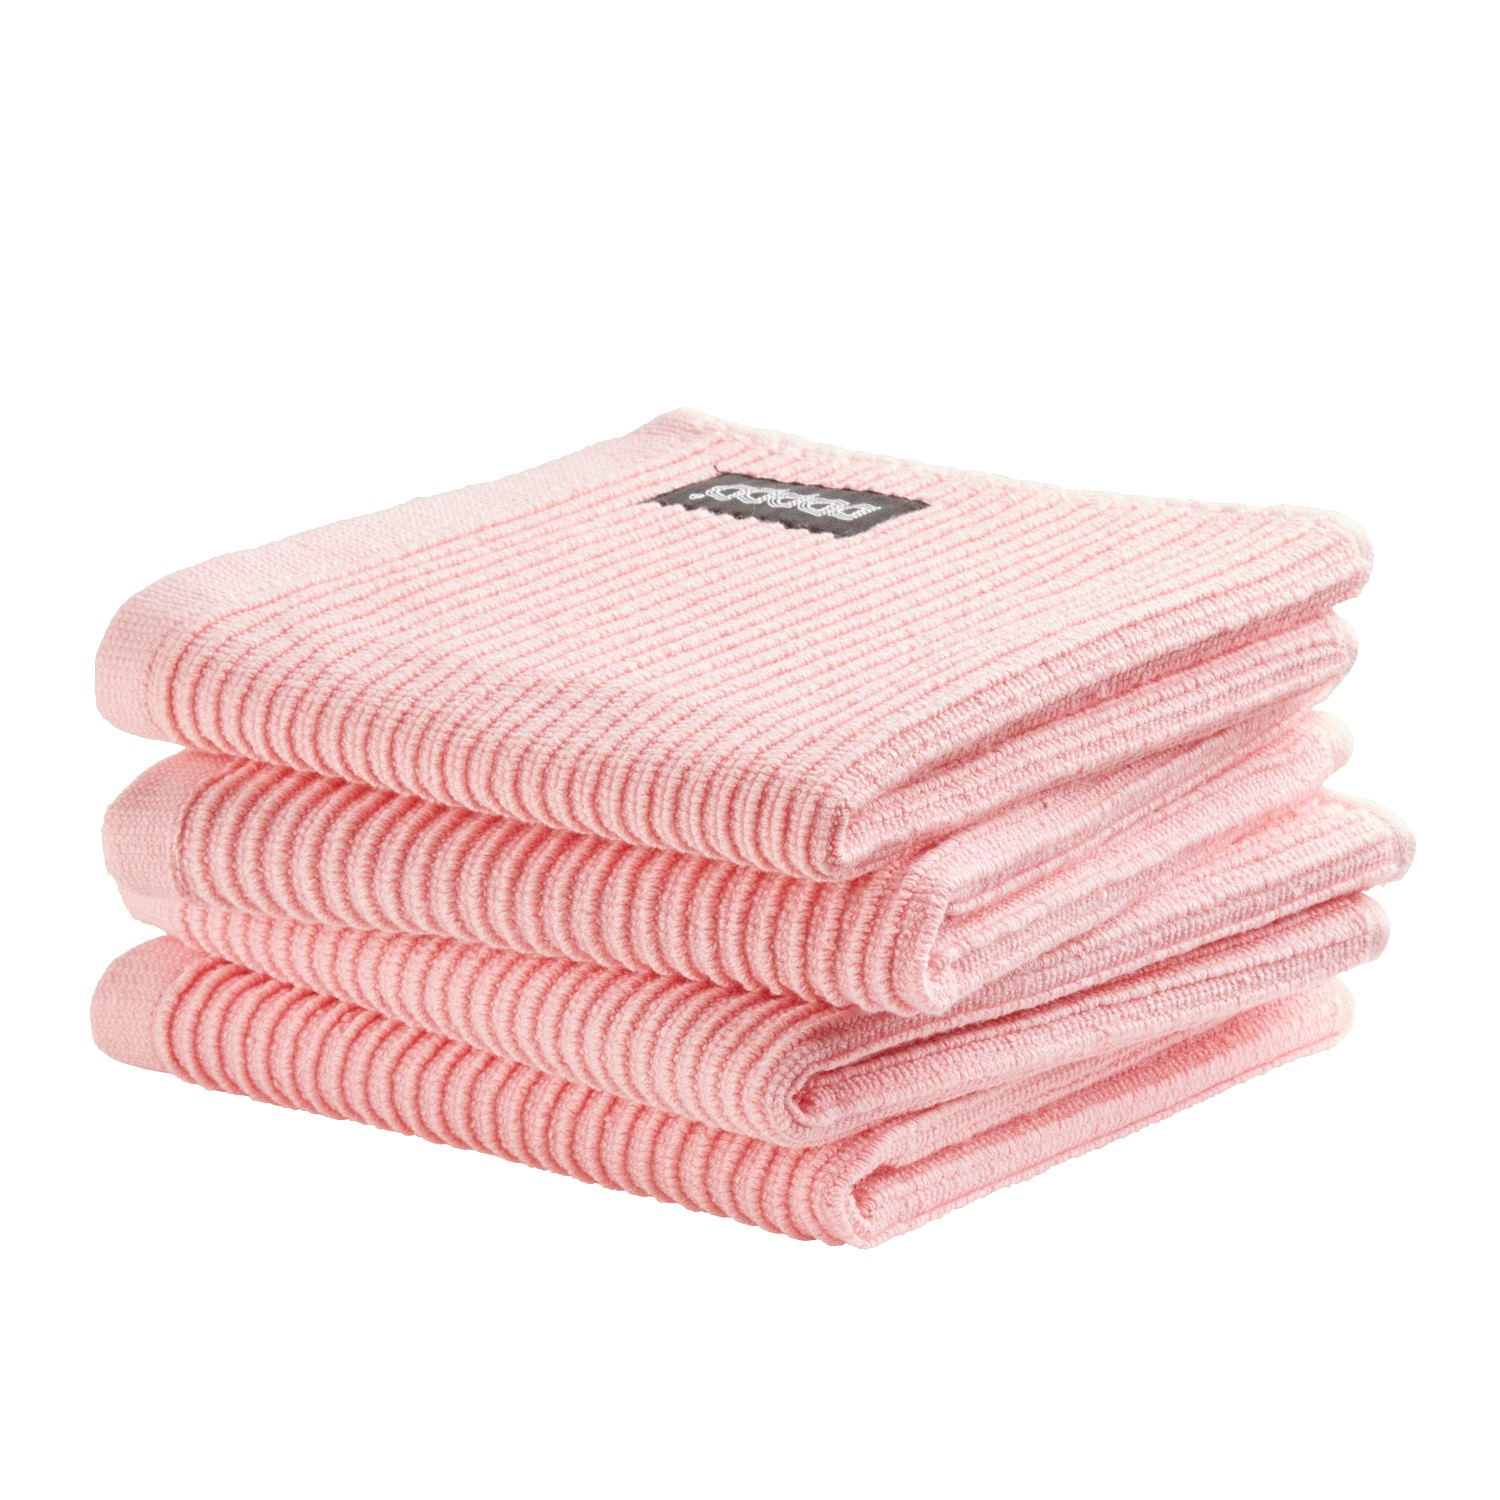 Vaatdoek Basic Clean | Pastel pink | 30 x 30 cm